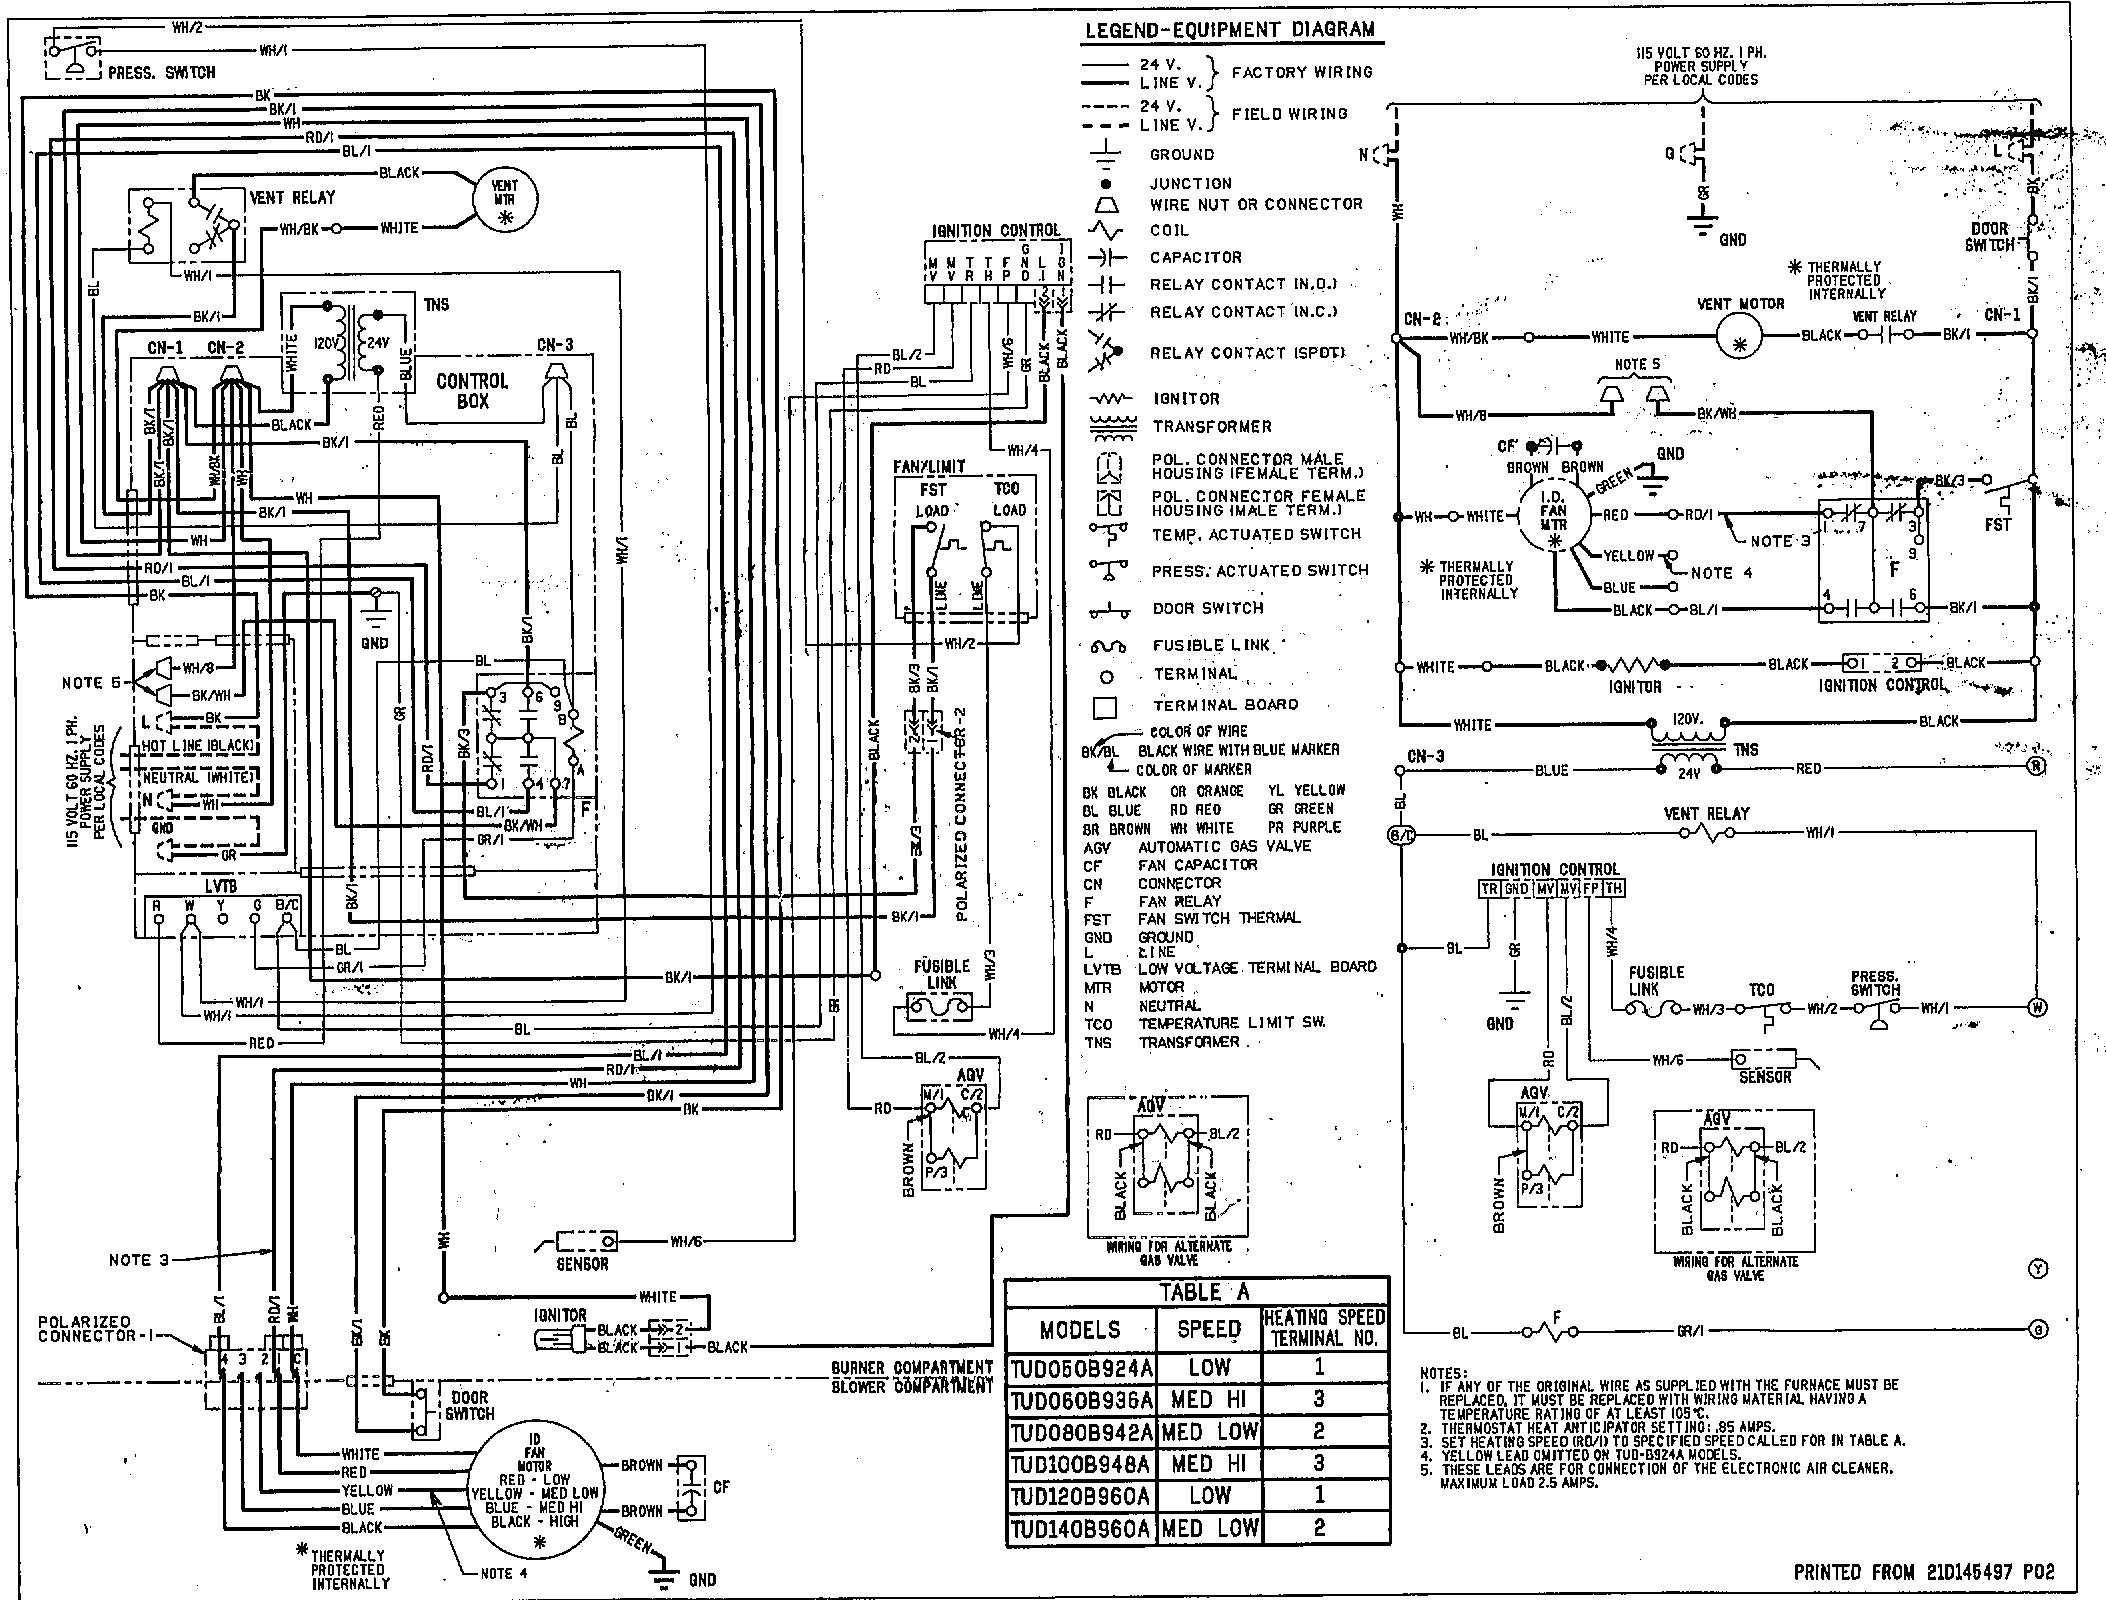 A Typical Furnace Wiring Schematic For